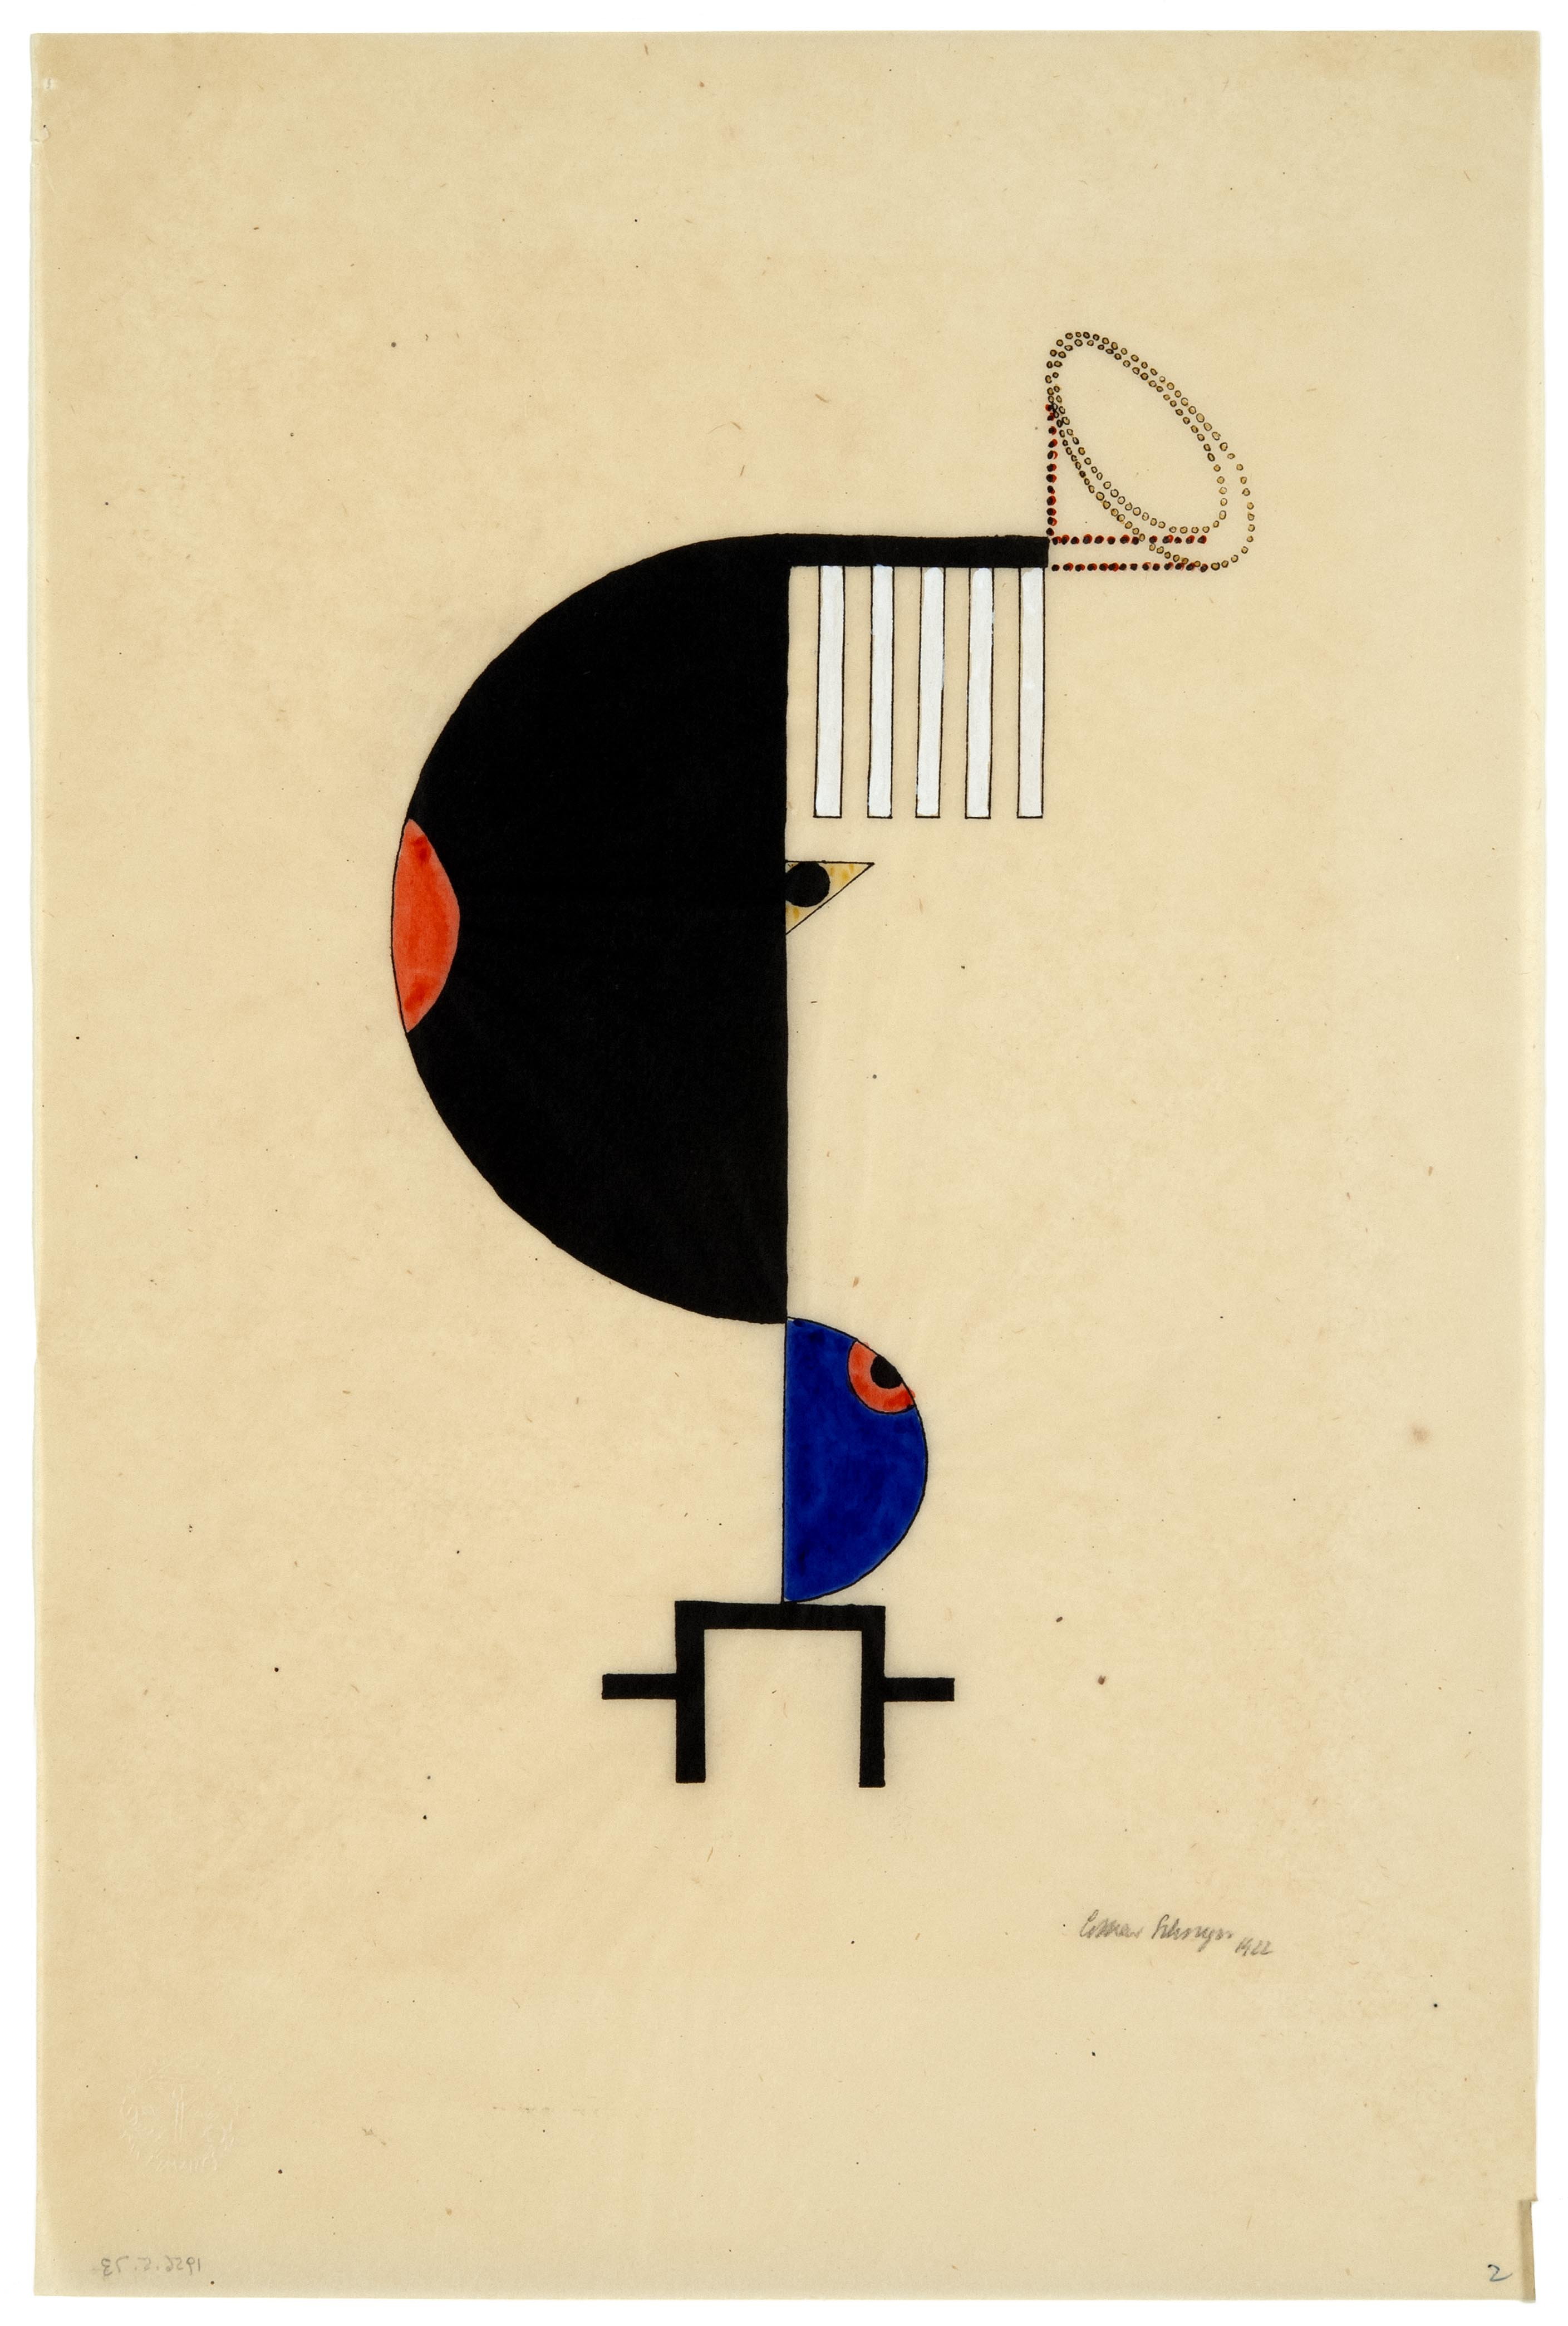 Lothar Schreyer, Color Form 2 (The Night)/ Farbform 2 (Die Nacht), Plate 14, 1922